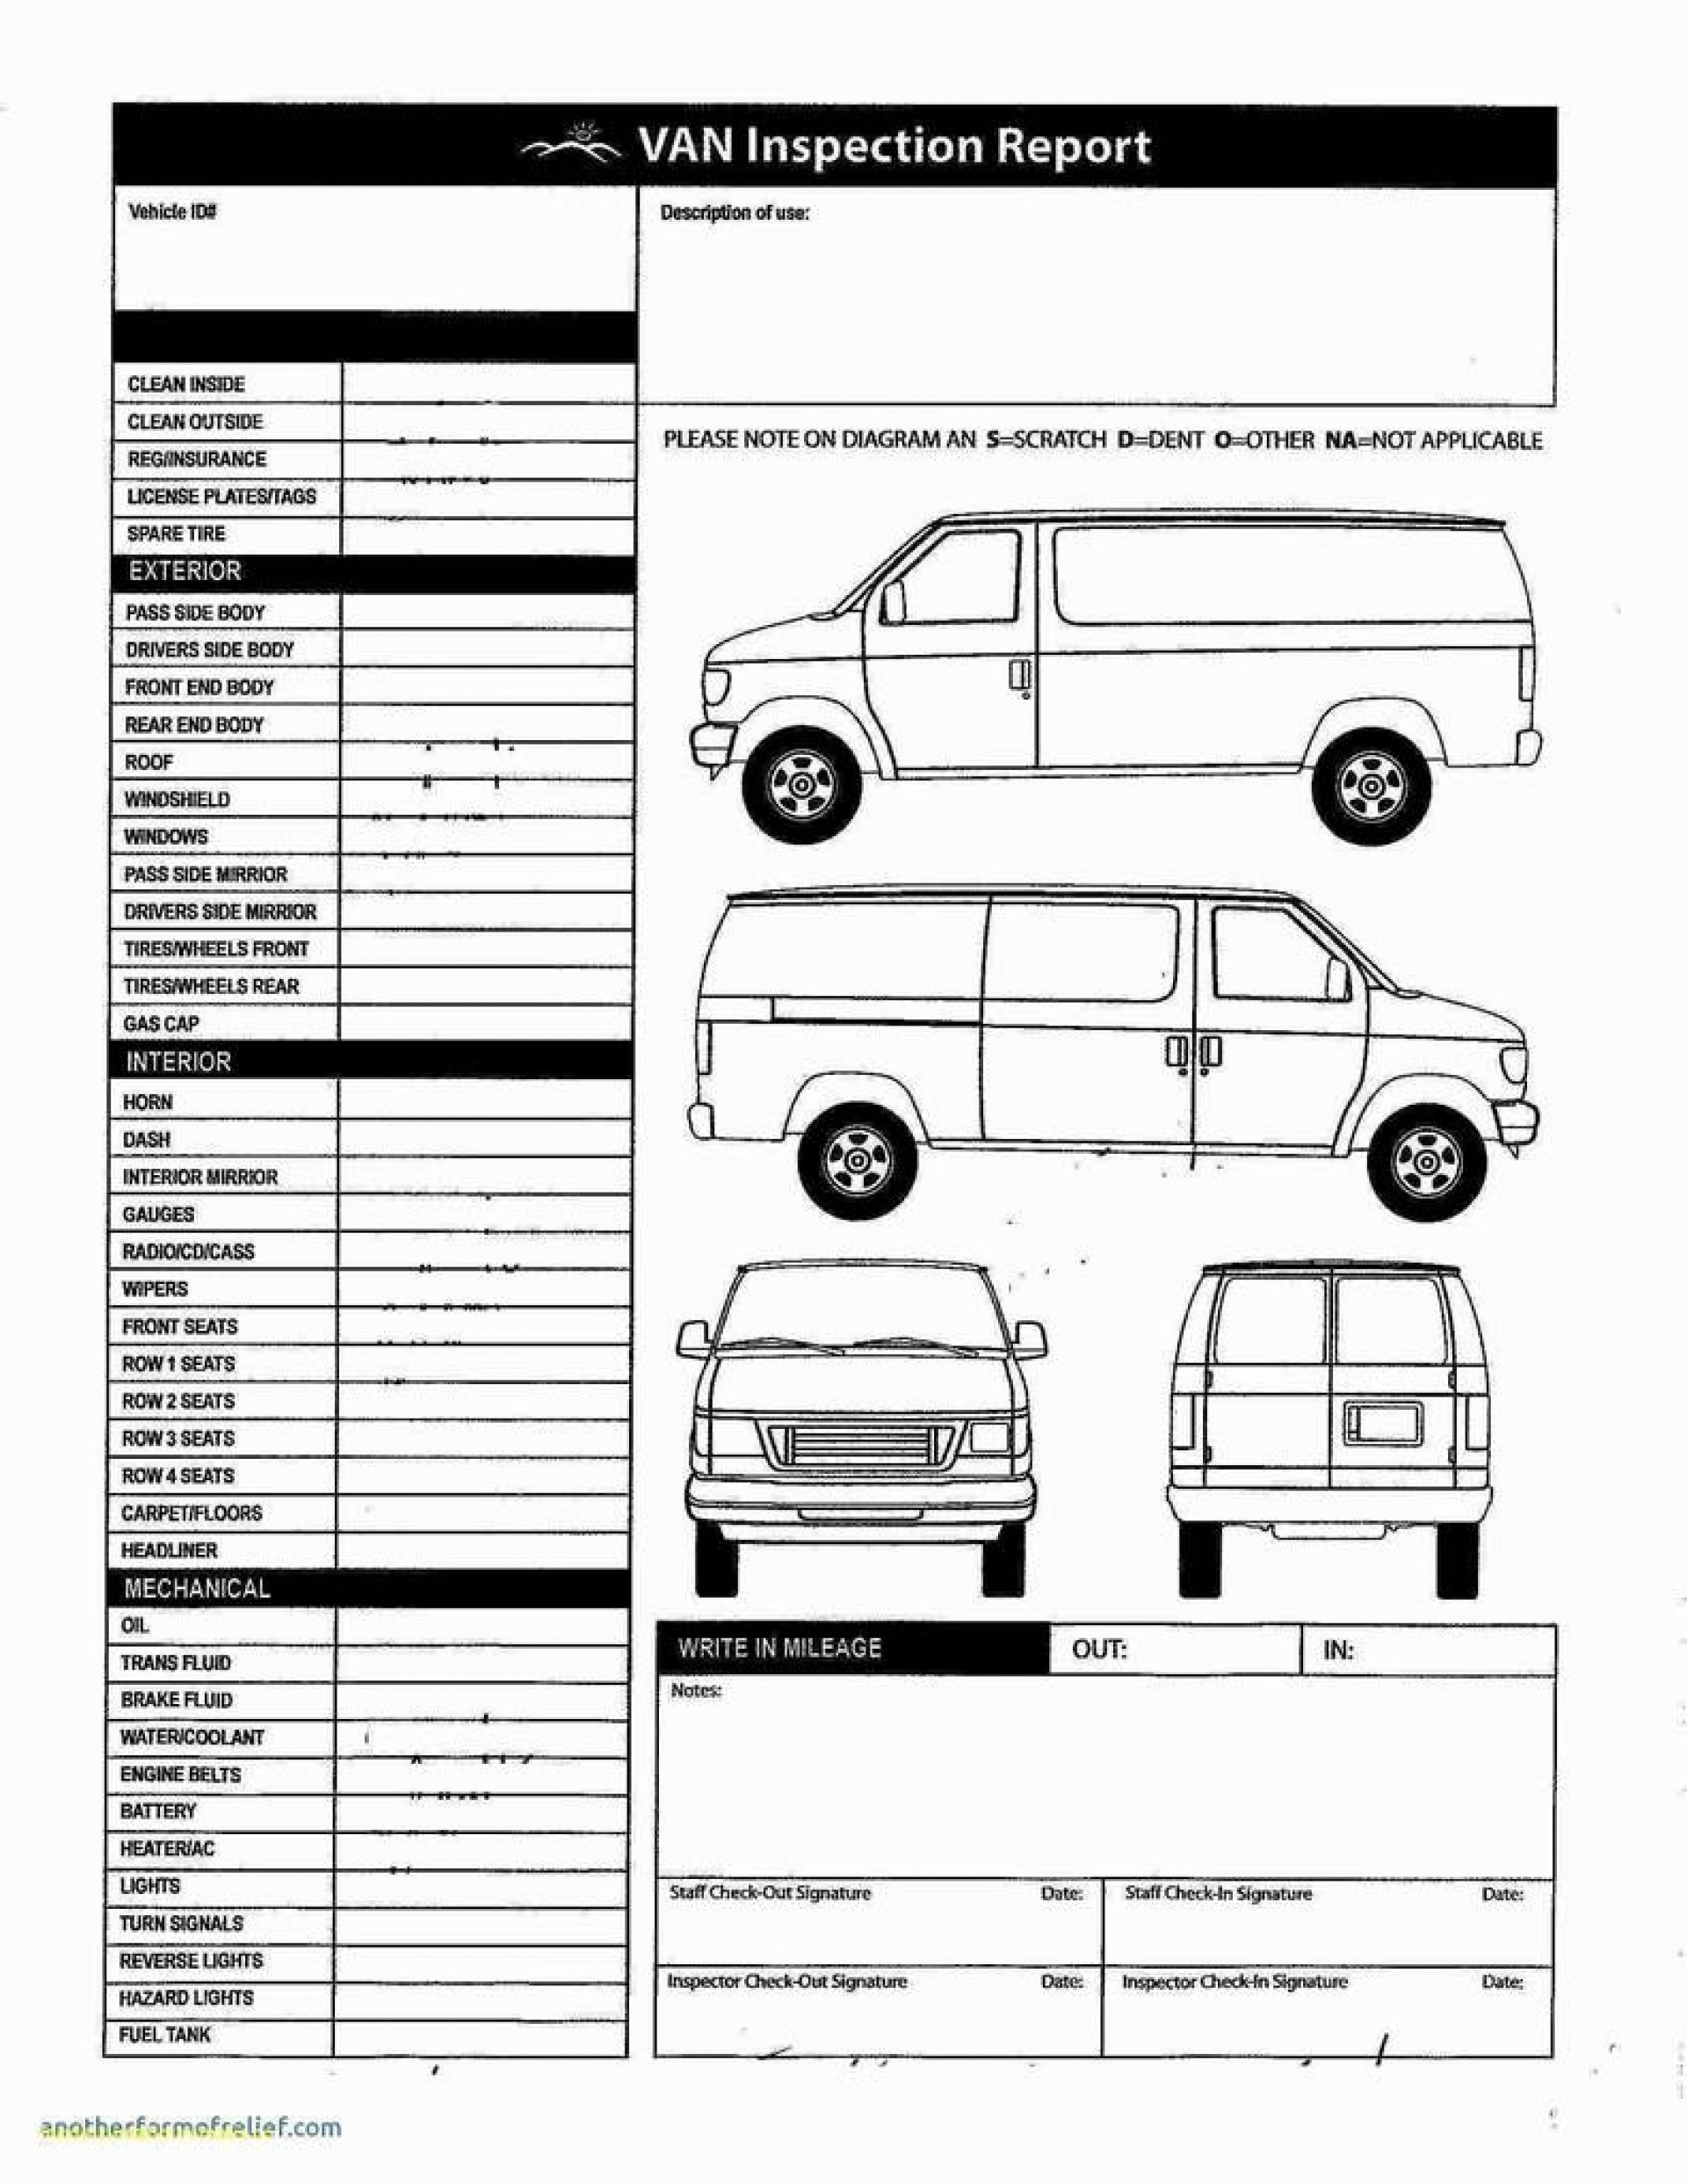 007 Staggering Truck Inspection Form Template Image  Commercial Vehicle Maintenance Free1920